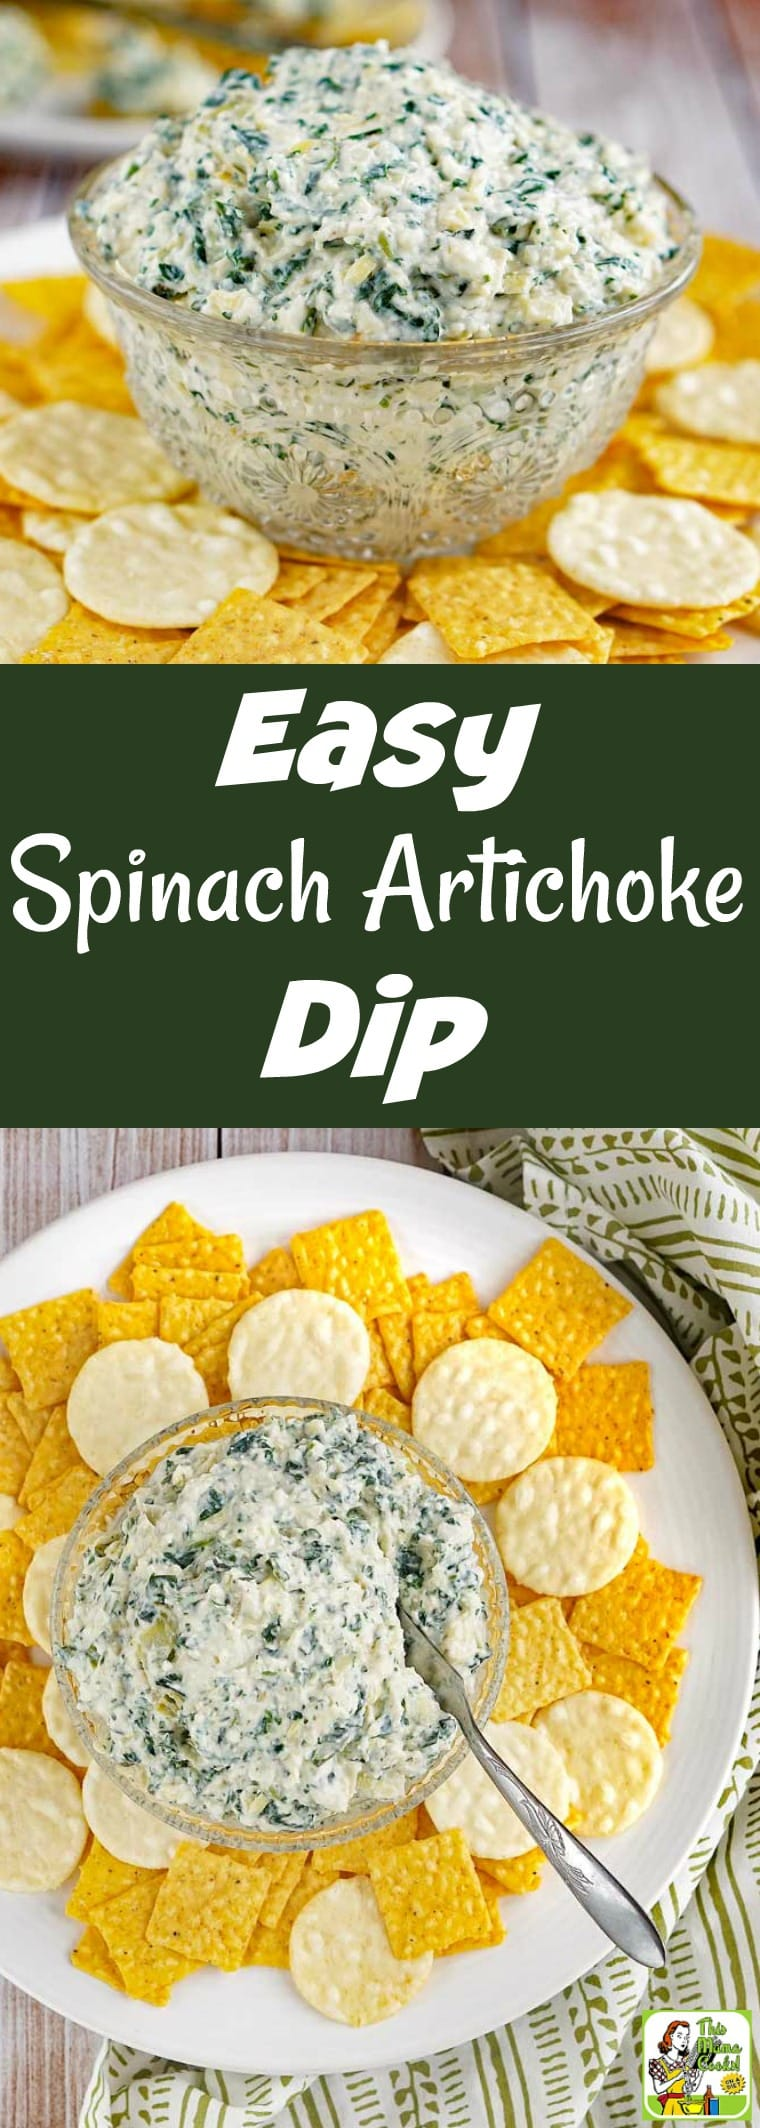 How to Make the Easiest Spinach Artichoke Dip Ever! You'll love this spinach artichoke dip recipe! It\'s made with Plain Silk Almondmilk Yogurt Alternative and can be made completely vegan with a few simple changes. Your guests will love this delicious party appetizer and it can be made in 20 minutes! #yogurt #spinach #appetizer #dip #vegan #glutenfree #dairyfree